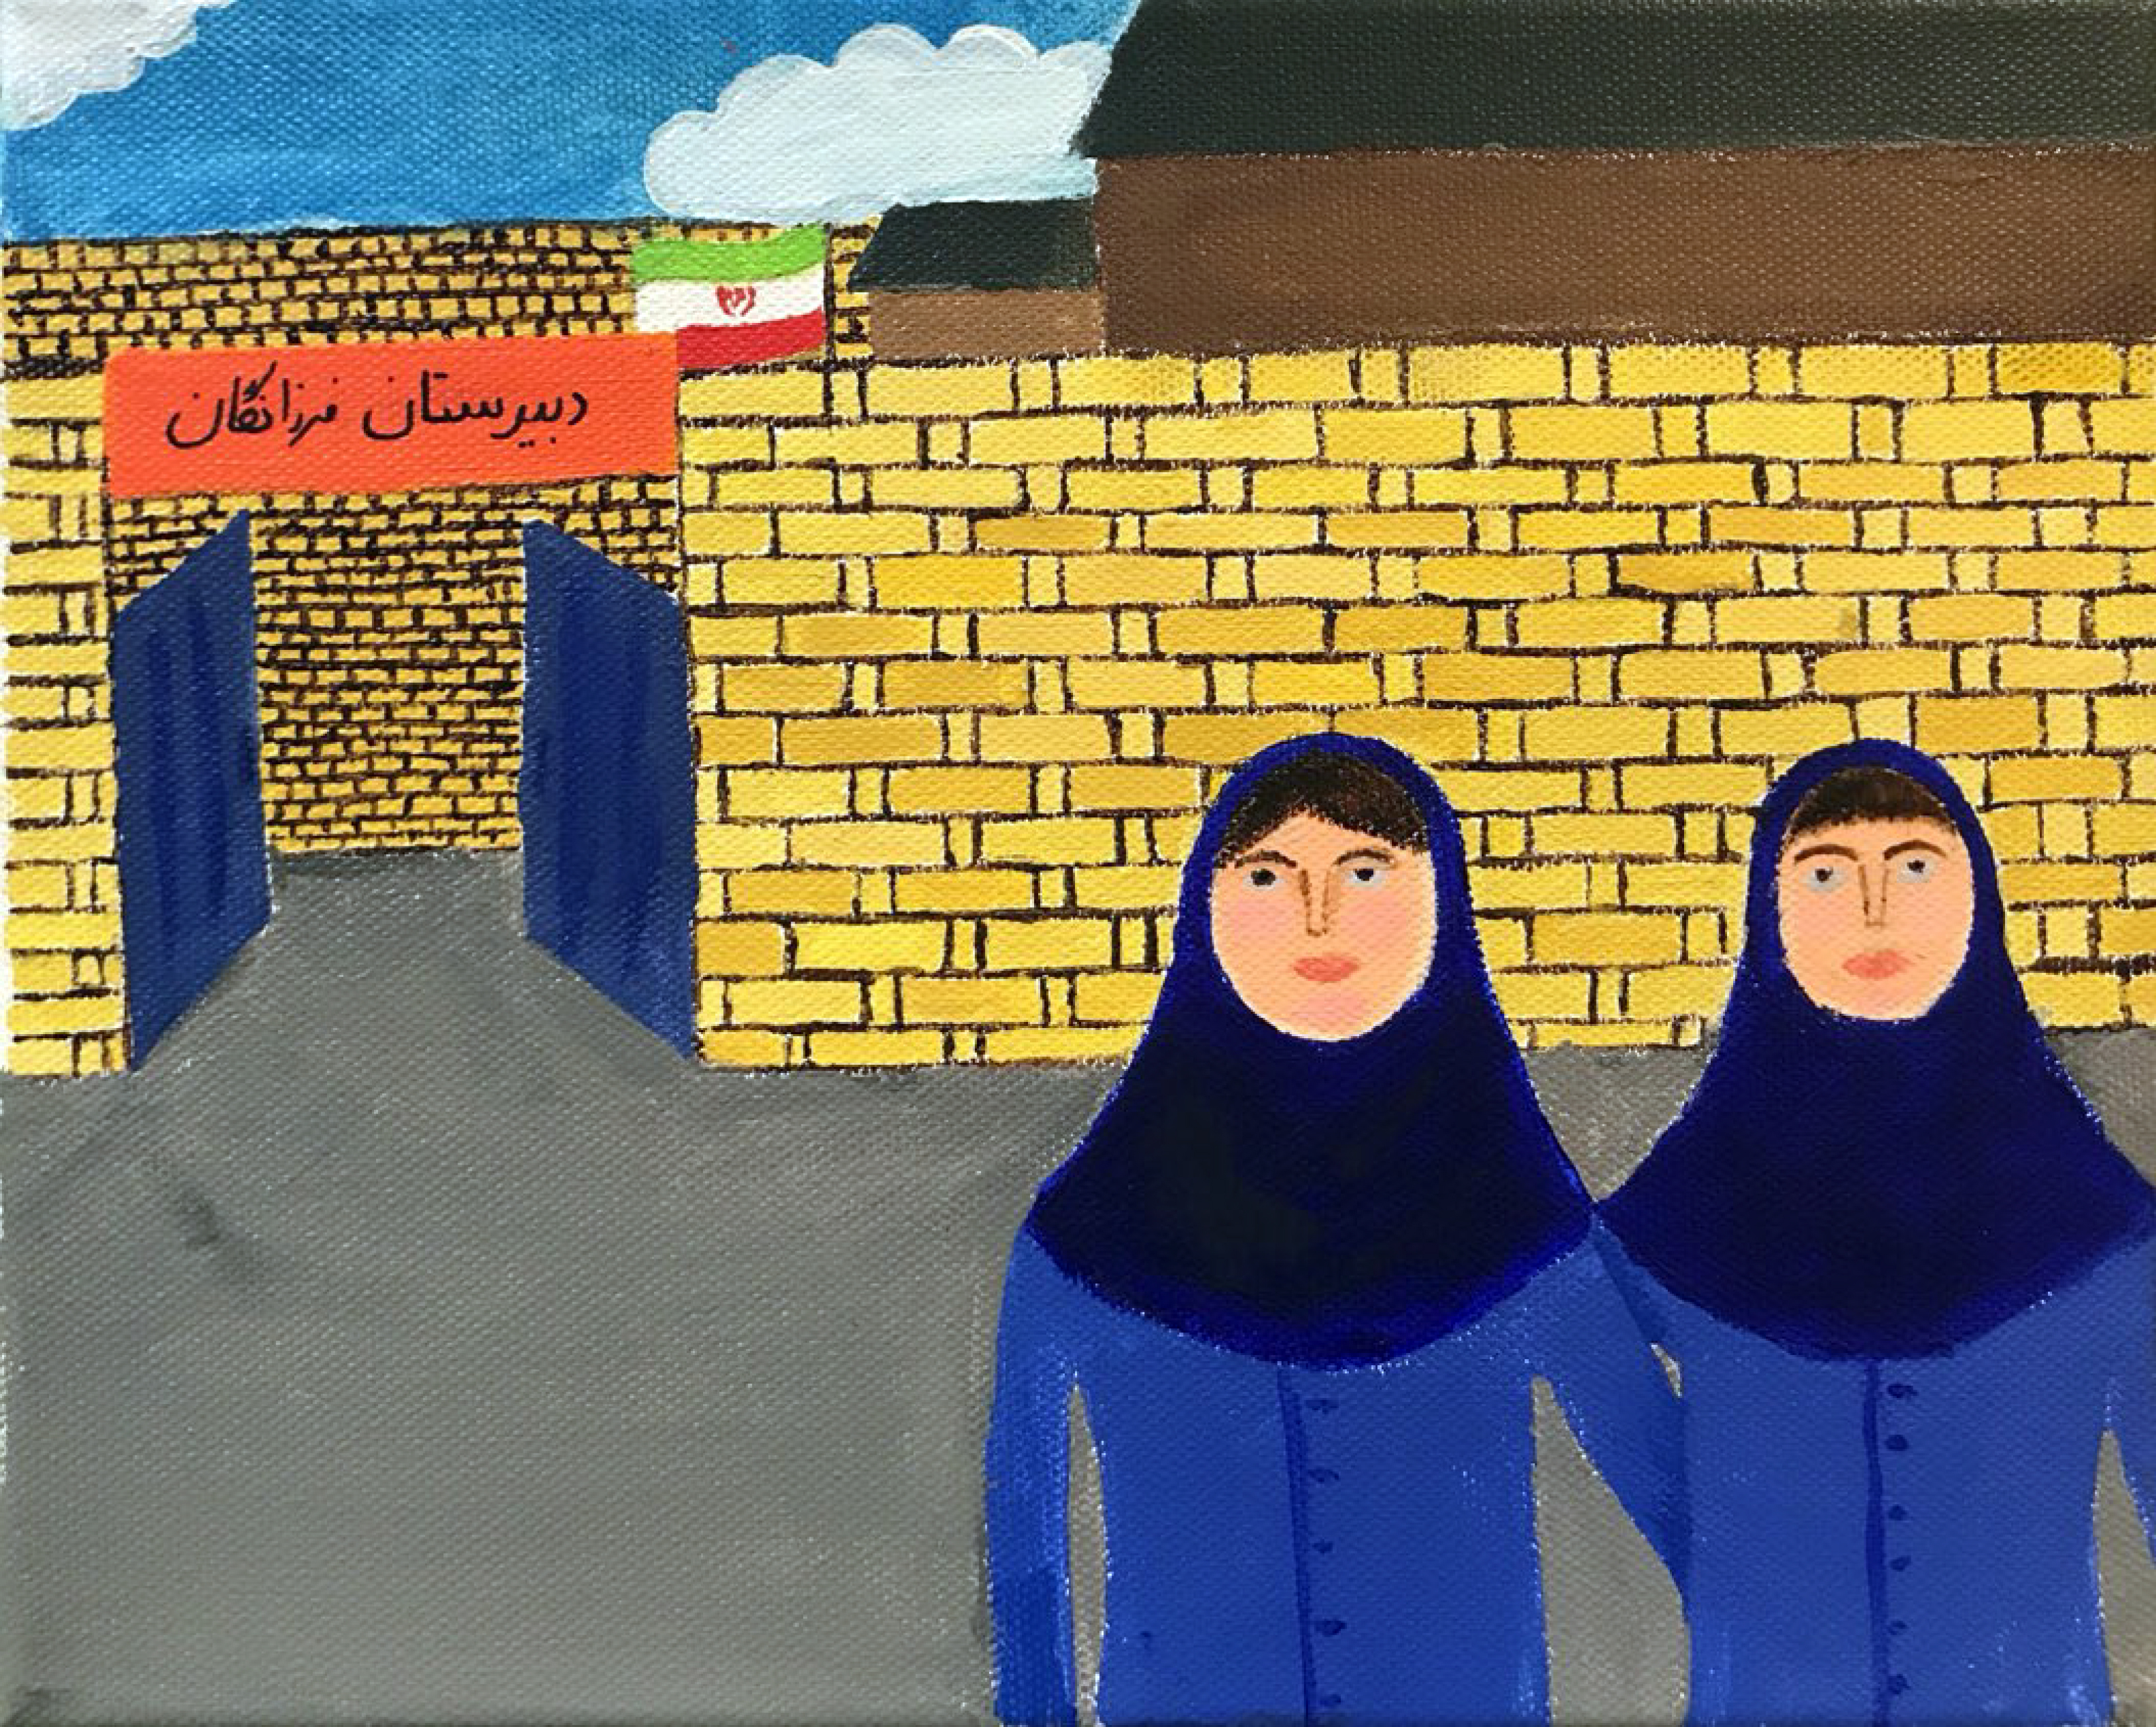 Two girls in Iranian school uniforms stand in front of a school with yellow bricks.